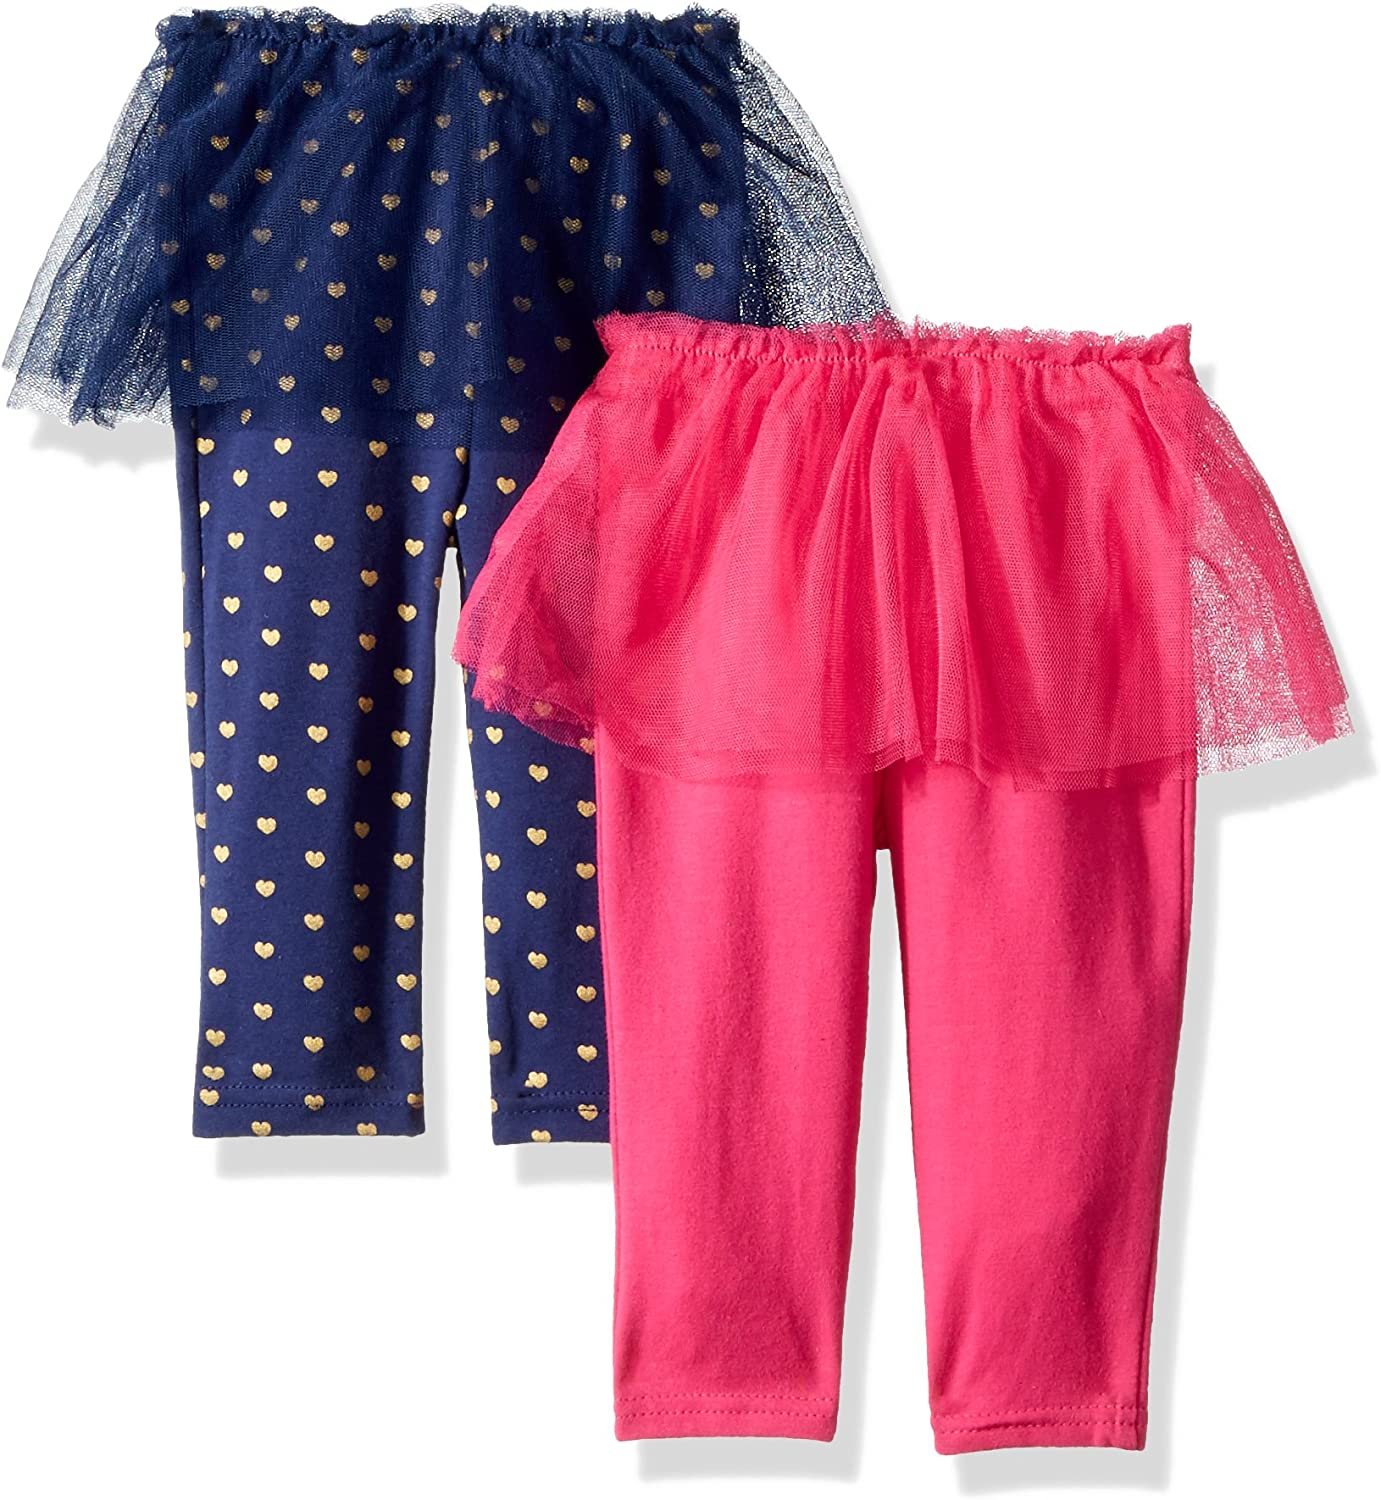 Hudson Baby Unisex Baby Cotton Pants and Leggings